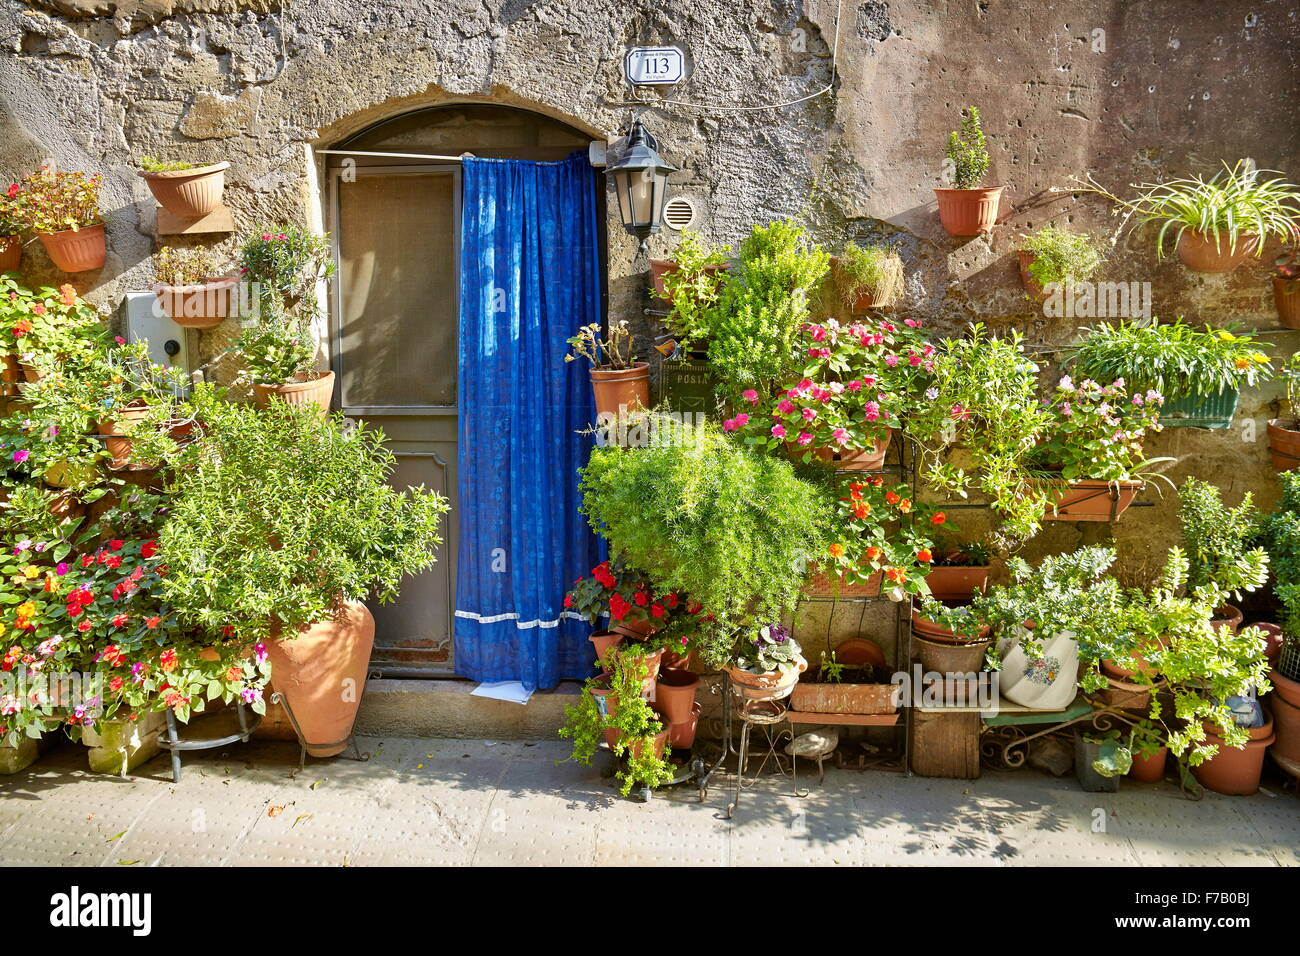 Entrance decorated with flowers, Pitigliano, Tuscany, Italy - Stock Image